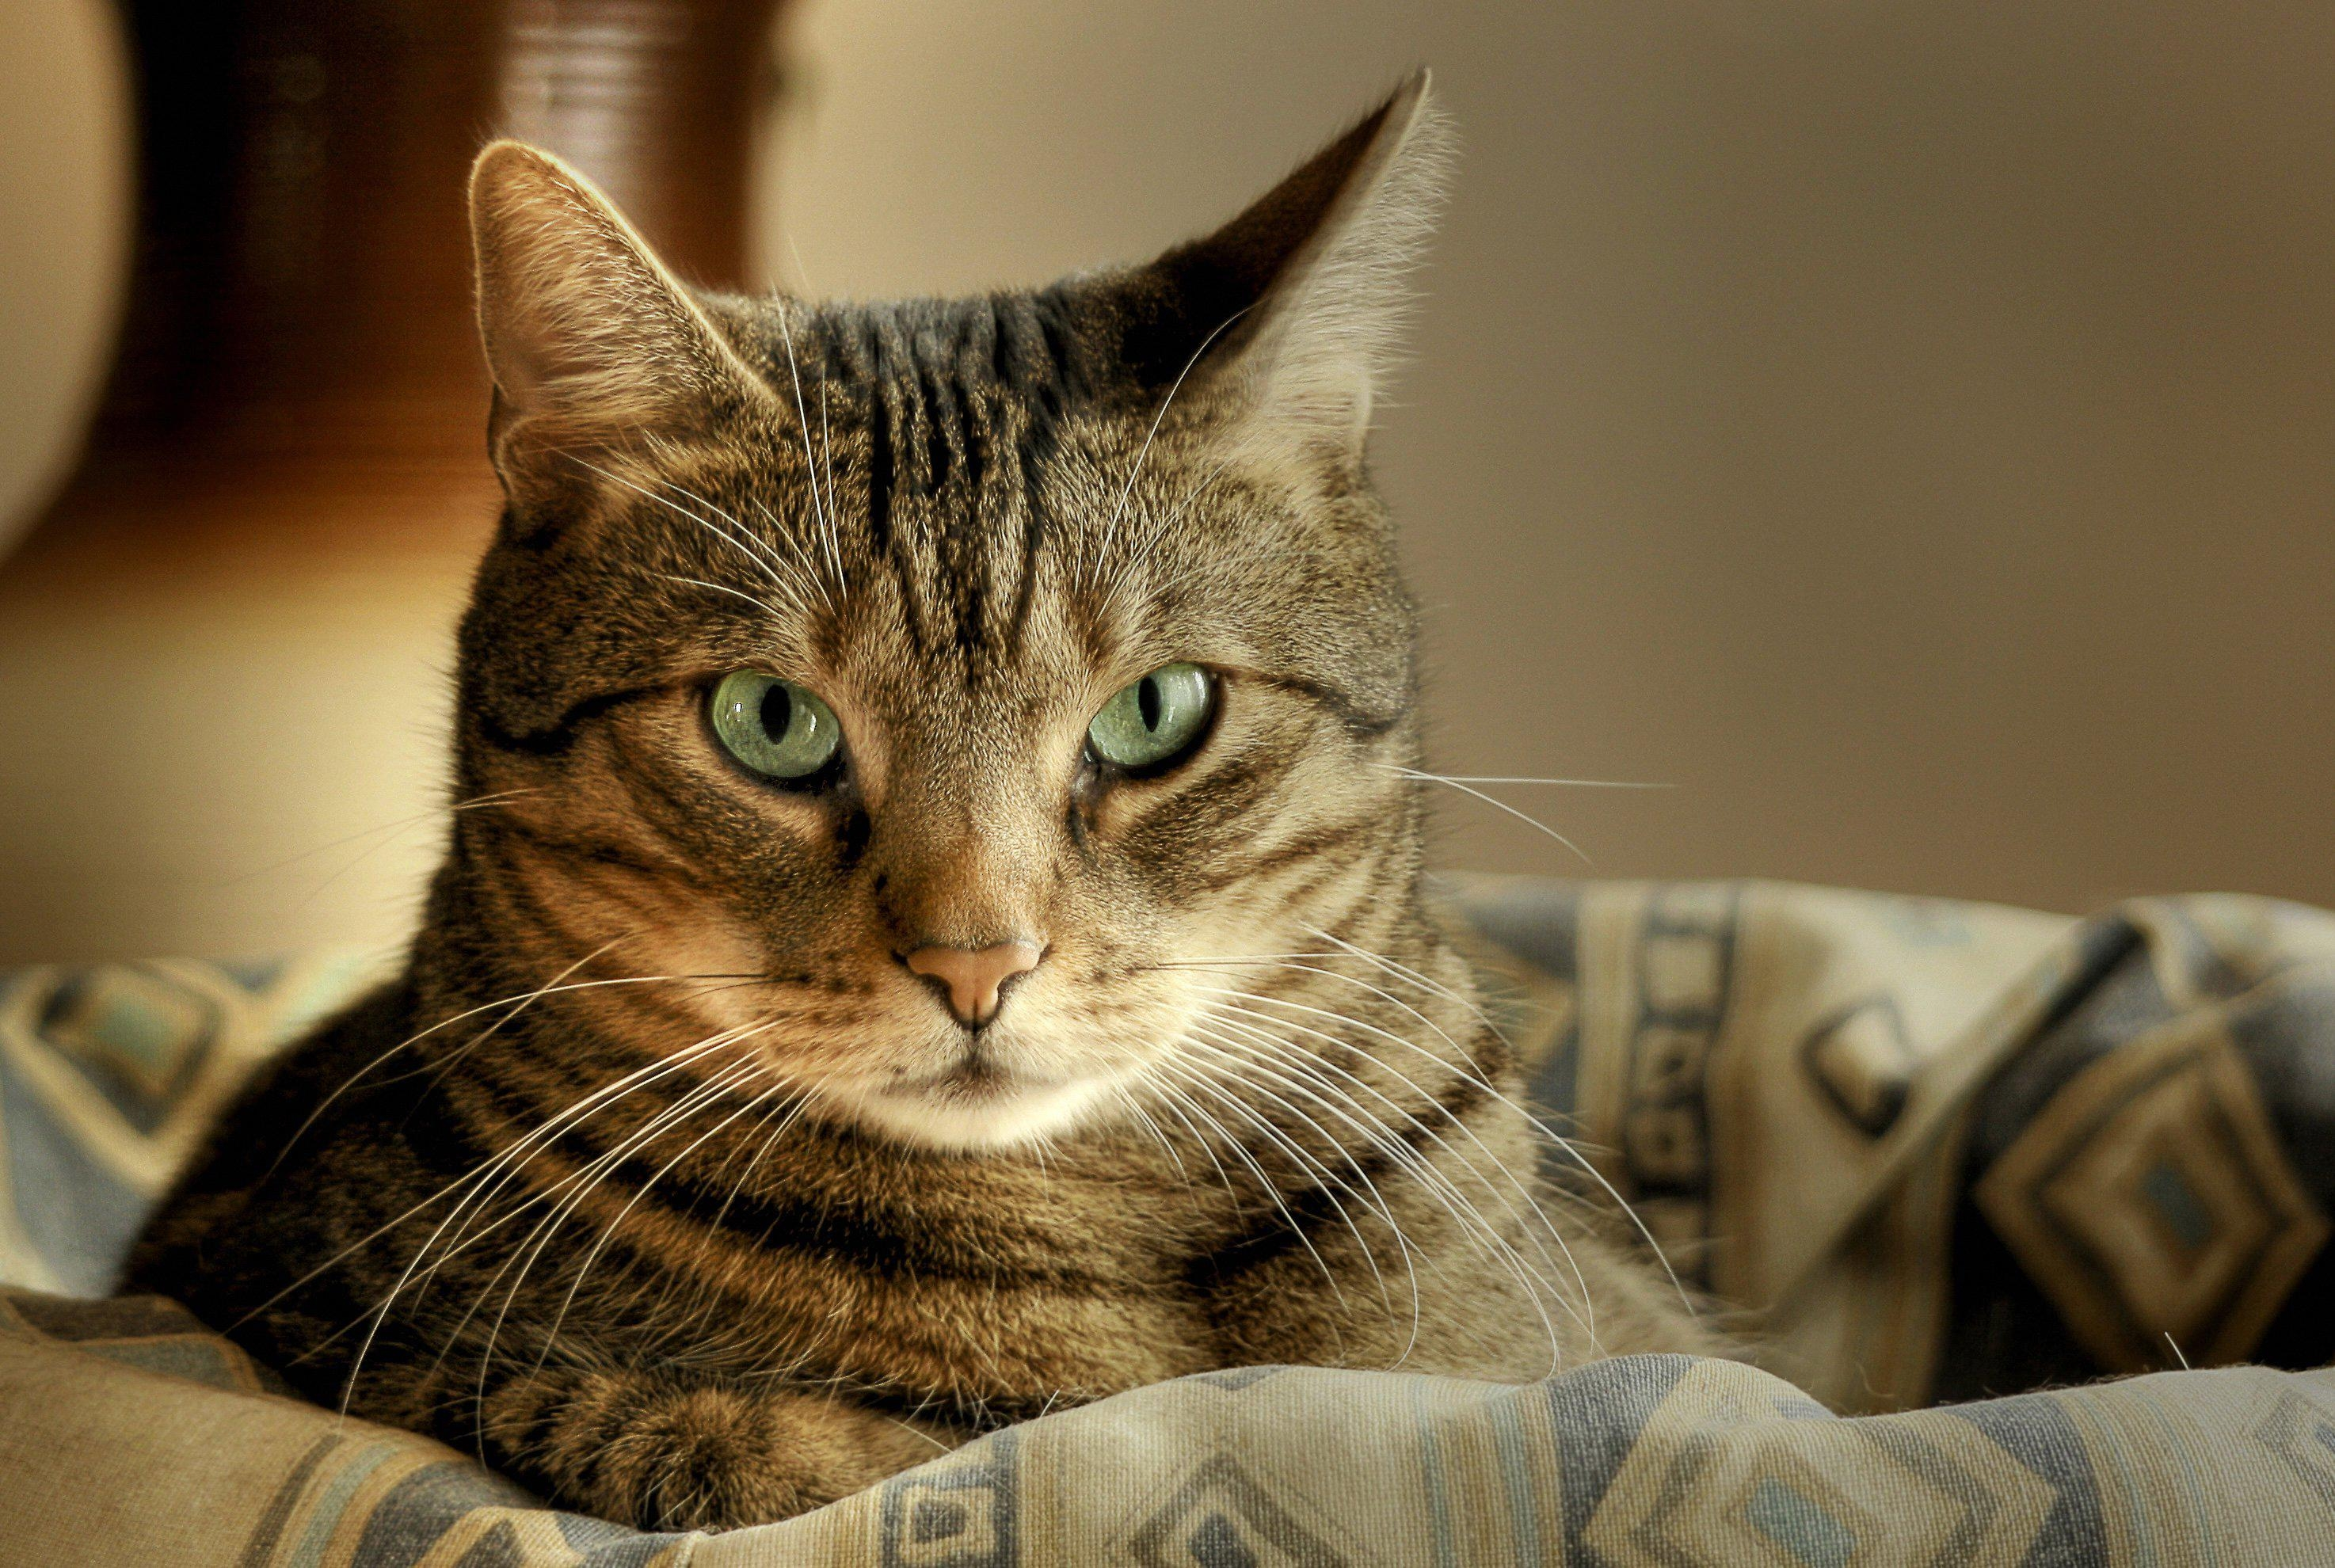 157531 download wallpaper Animals, Cat, Muzzle, Sight, Opinion screensavers and pictures for free